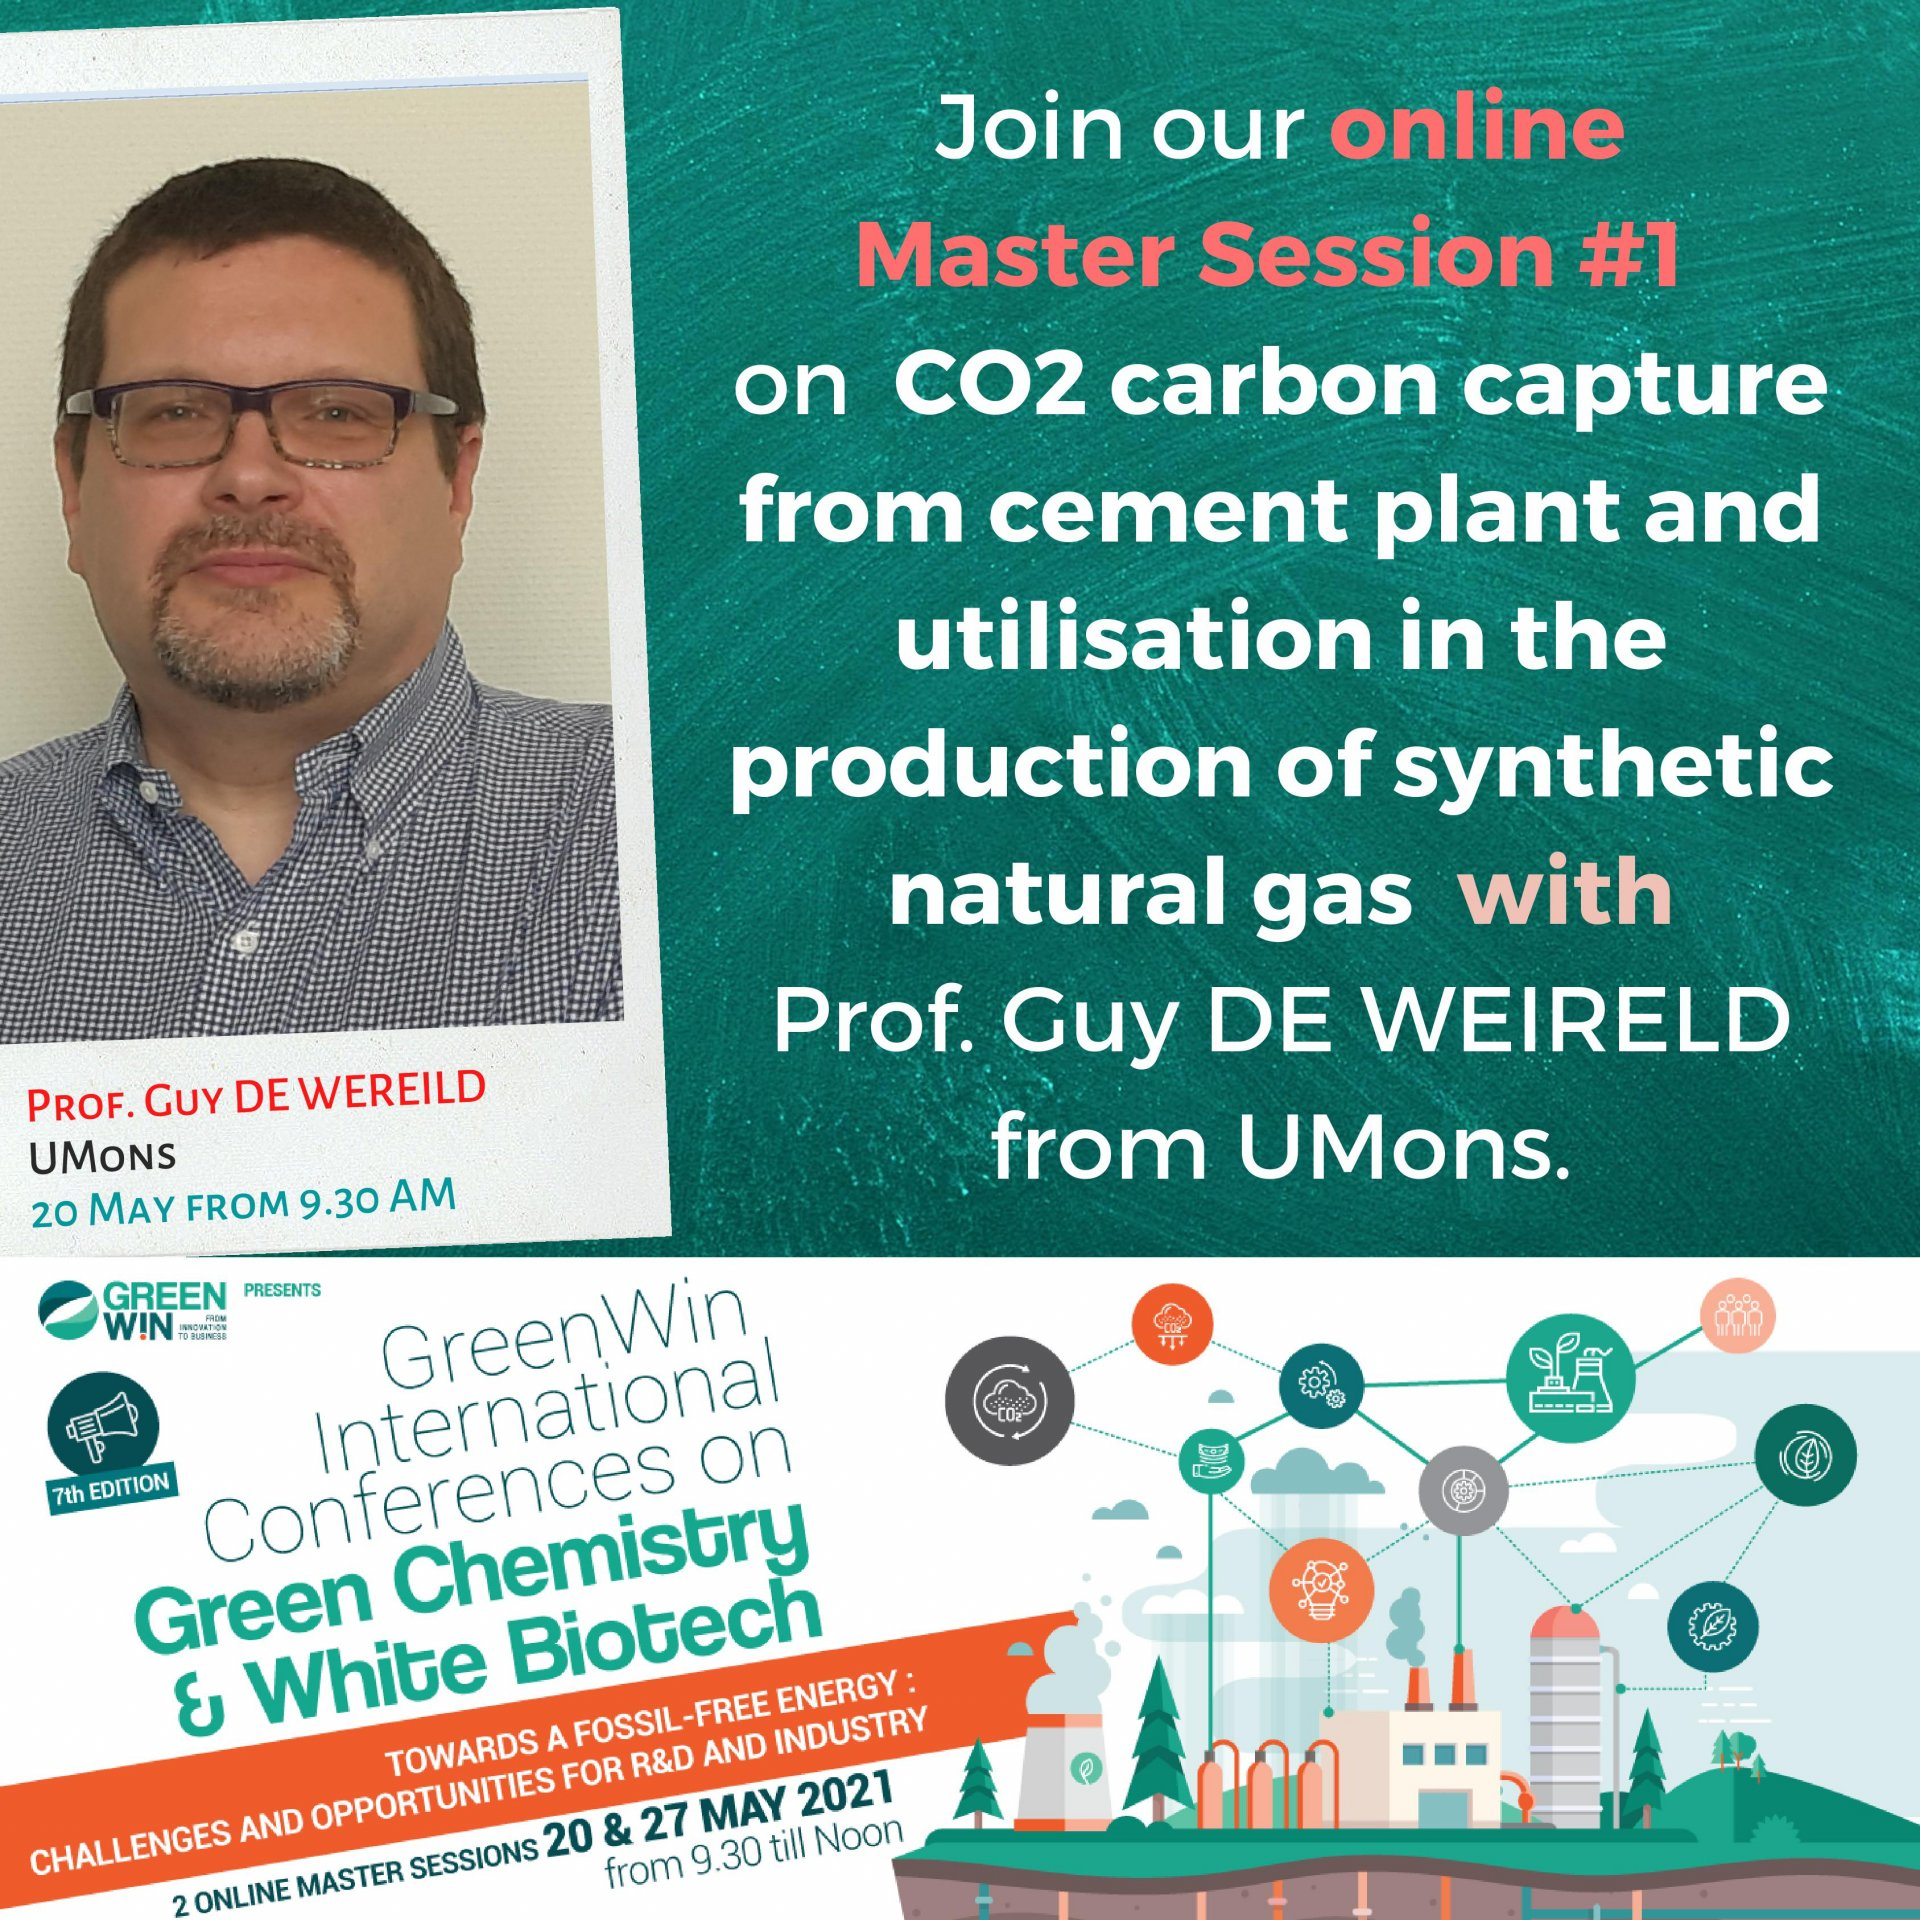 How does CCU from cement plant and utilisation help producing synthetic natural gas? Prof. Guy DE WEREILD from UMons knows all about it!